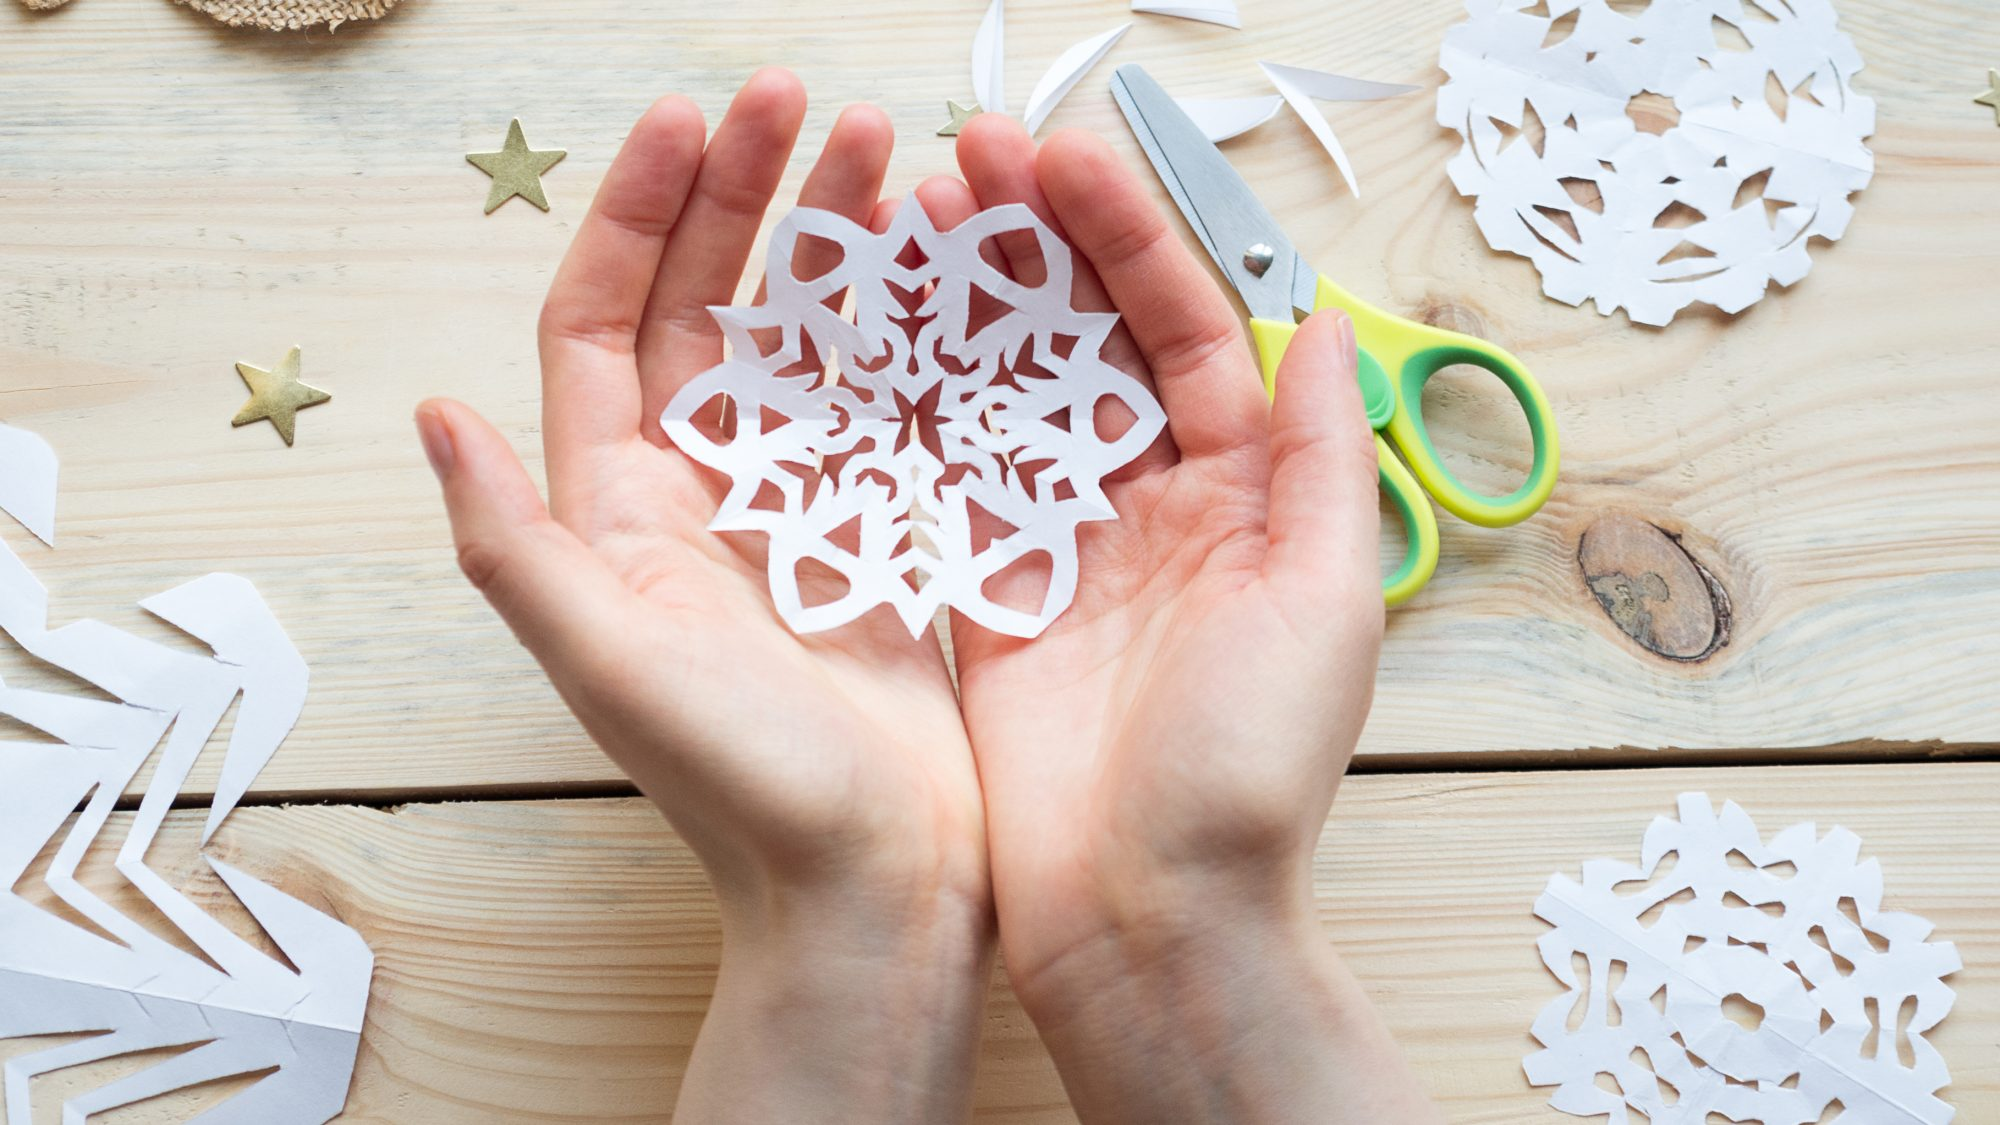 How to make paper snowflakes - a snowflake of paper